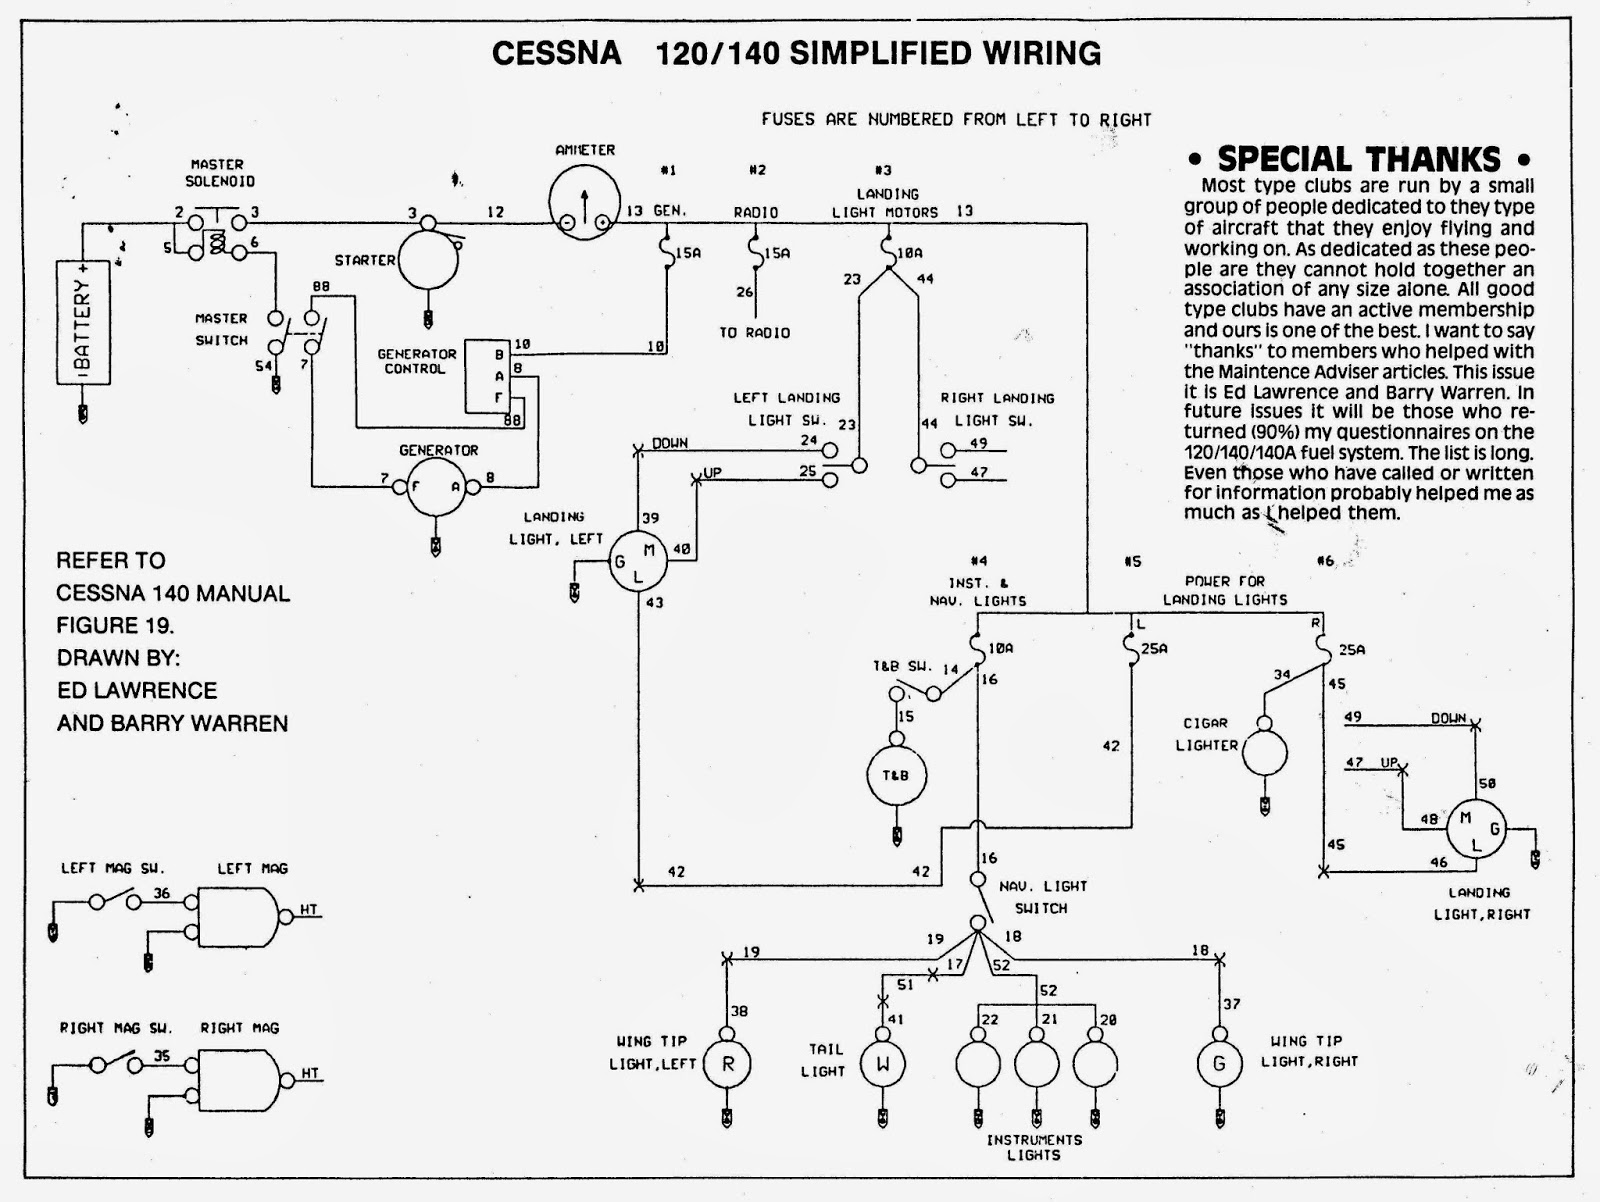 C 140+Simple+Wiring cessna 140 rebirth electrical loads & wiring cessna 182 wiring diagram at soozxer.org